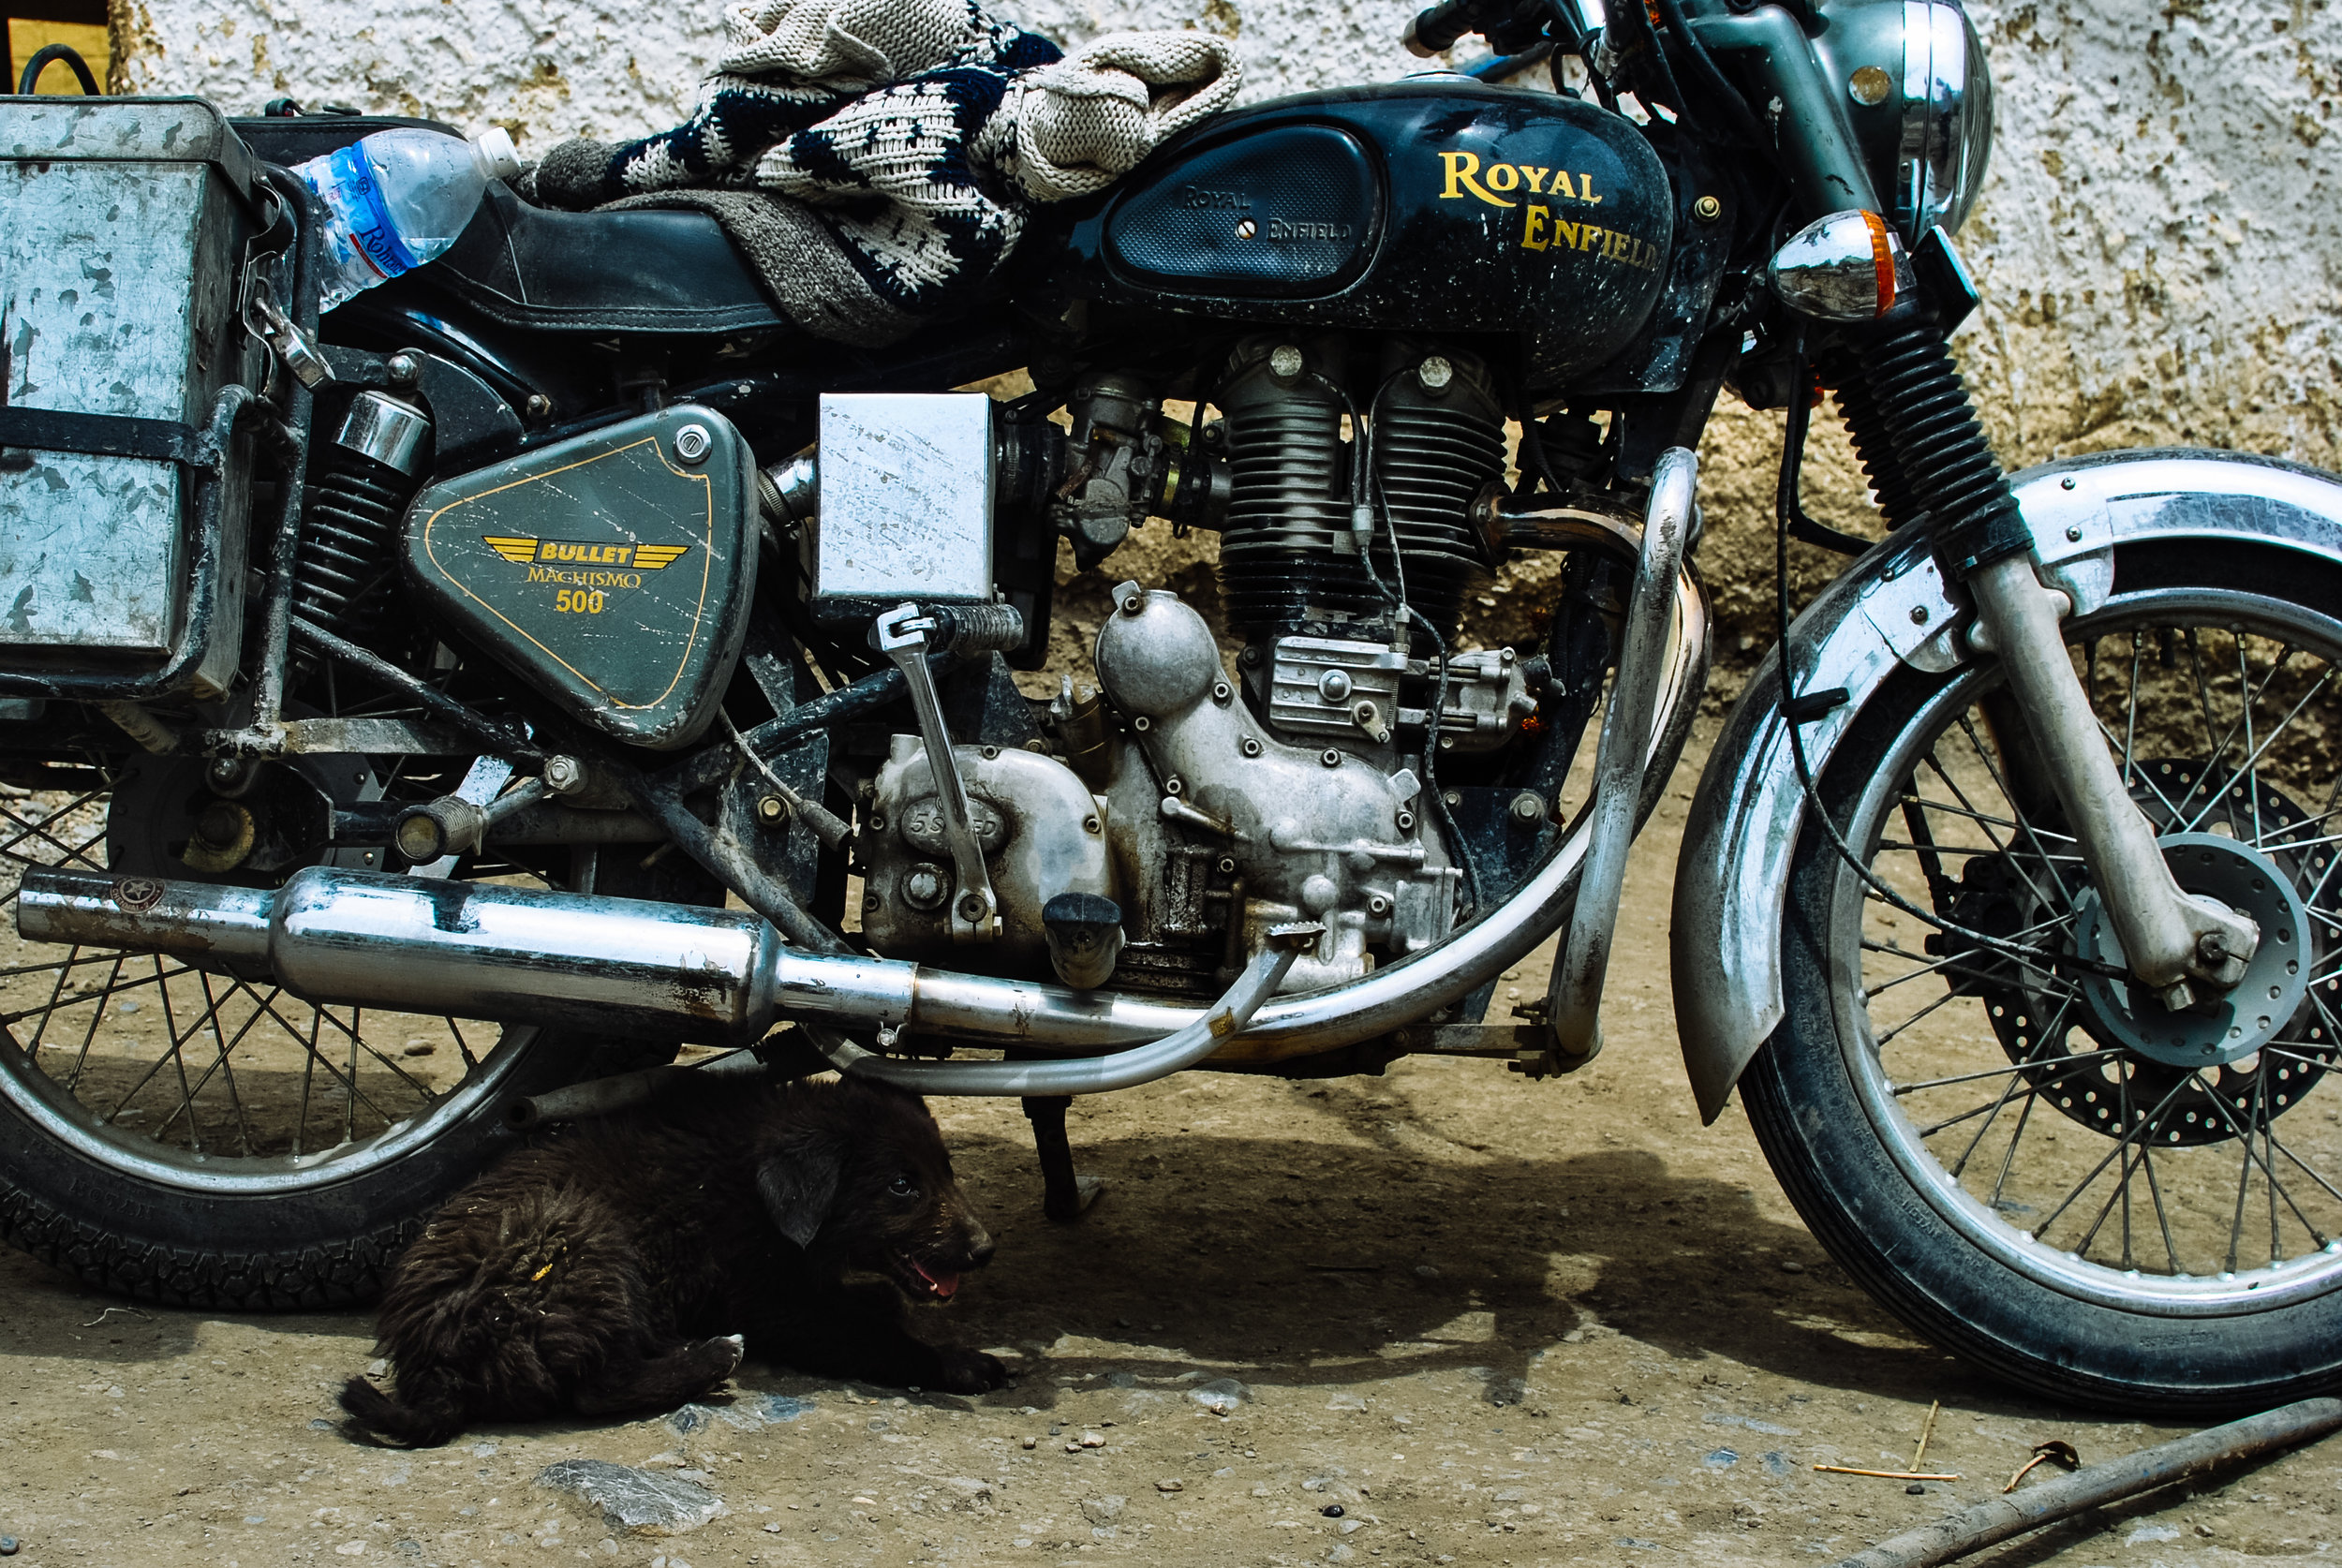 Jeff's 500cc Royal Enfield Bullet